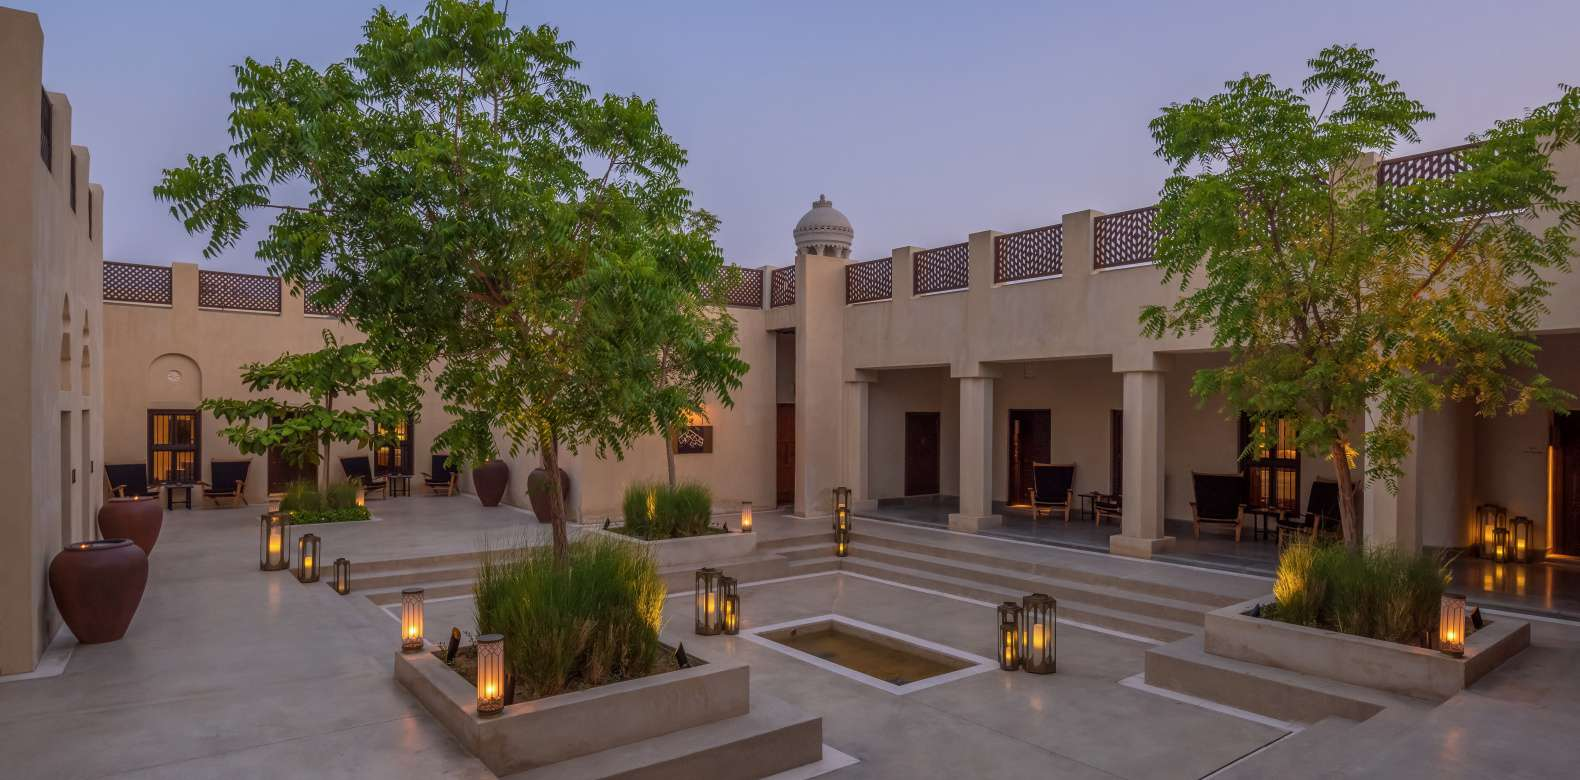 Courtyard in an Arabic architectural style with trees and many small lanterns